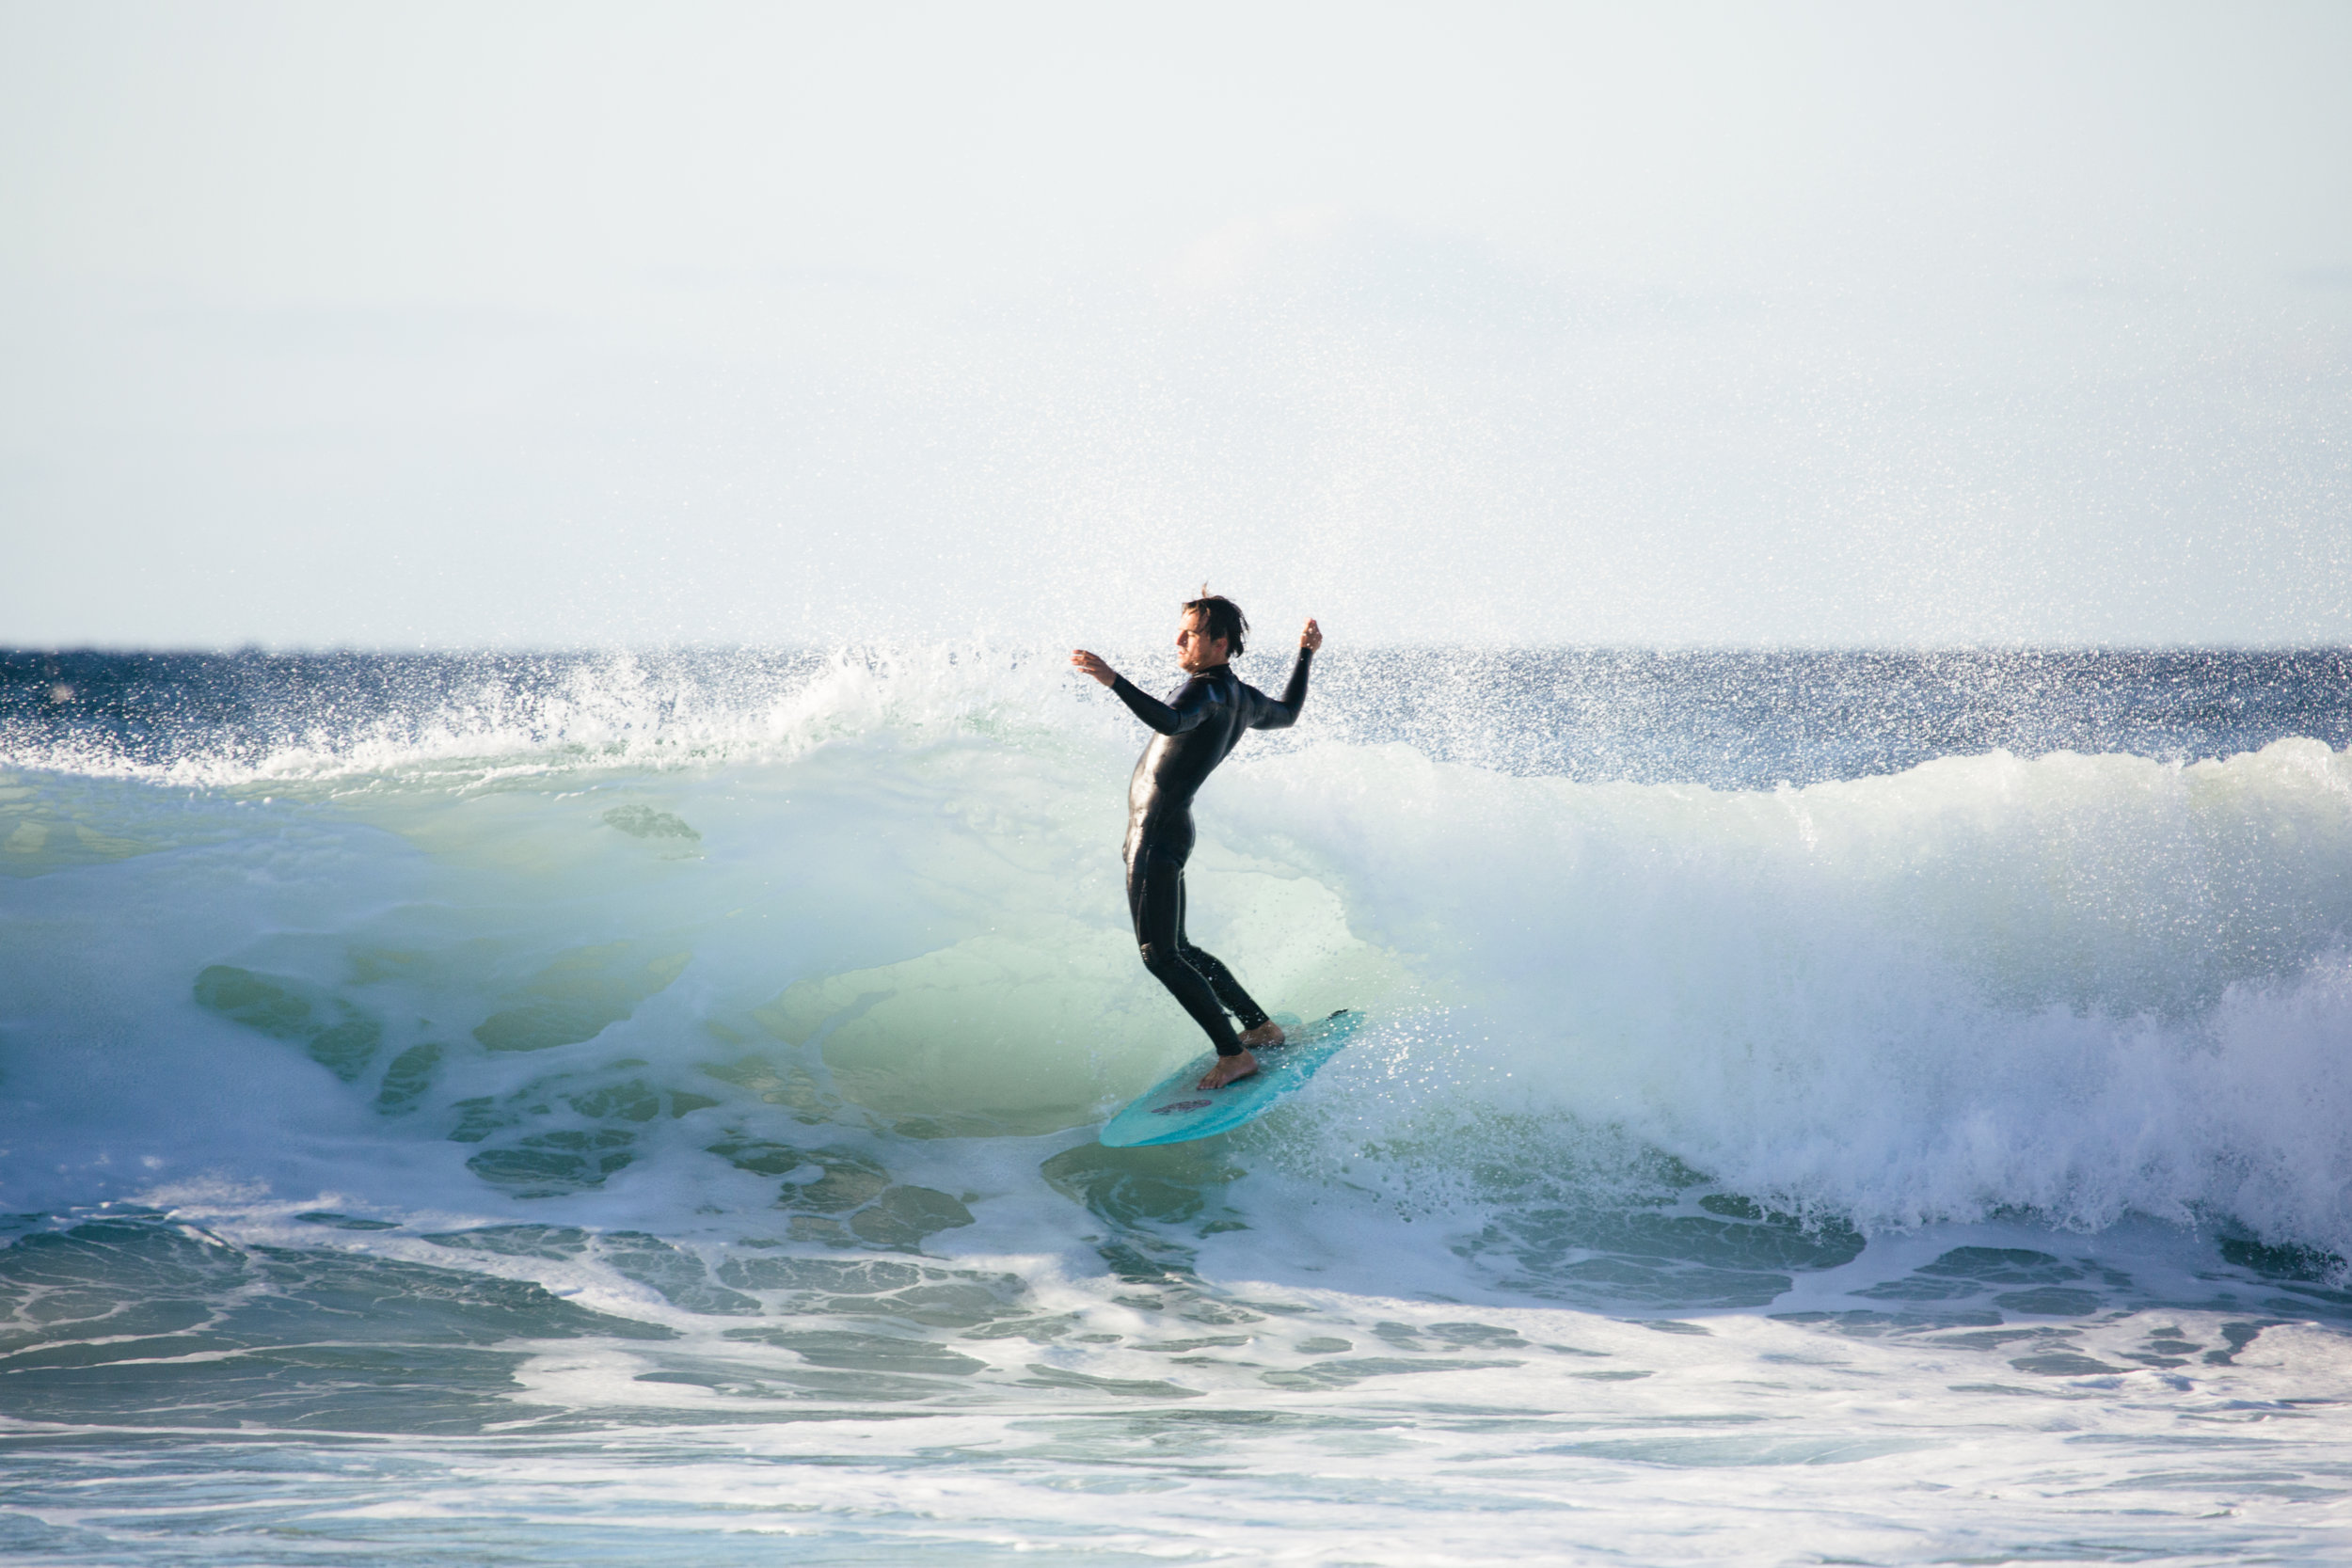 D_Lloyd_Surfer_Journal_Submit_201920140711_0044.jpg